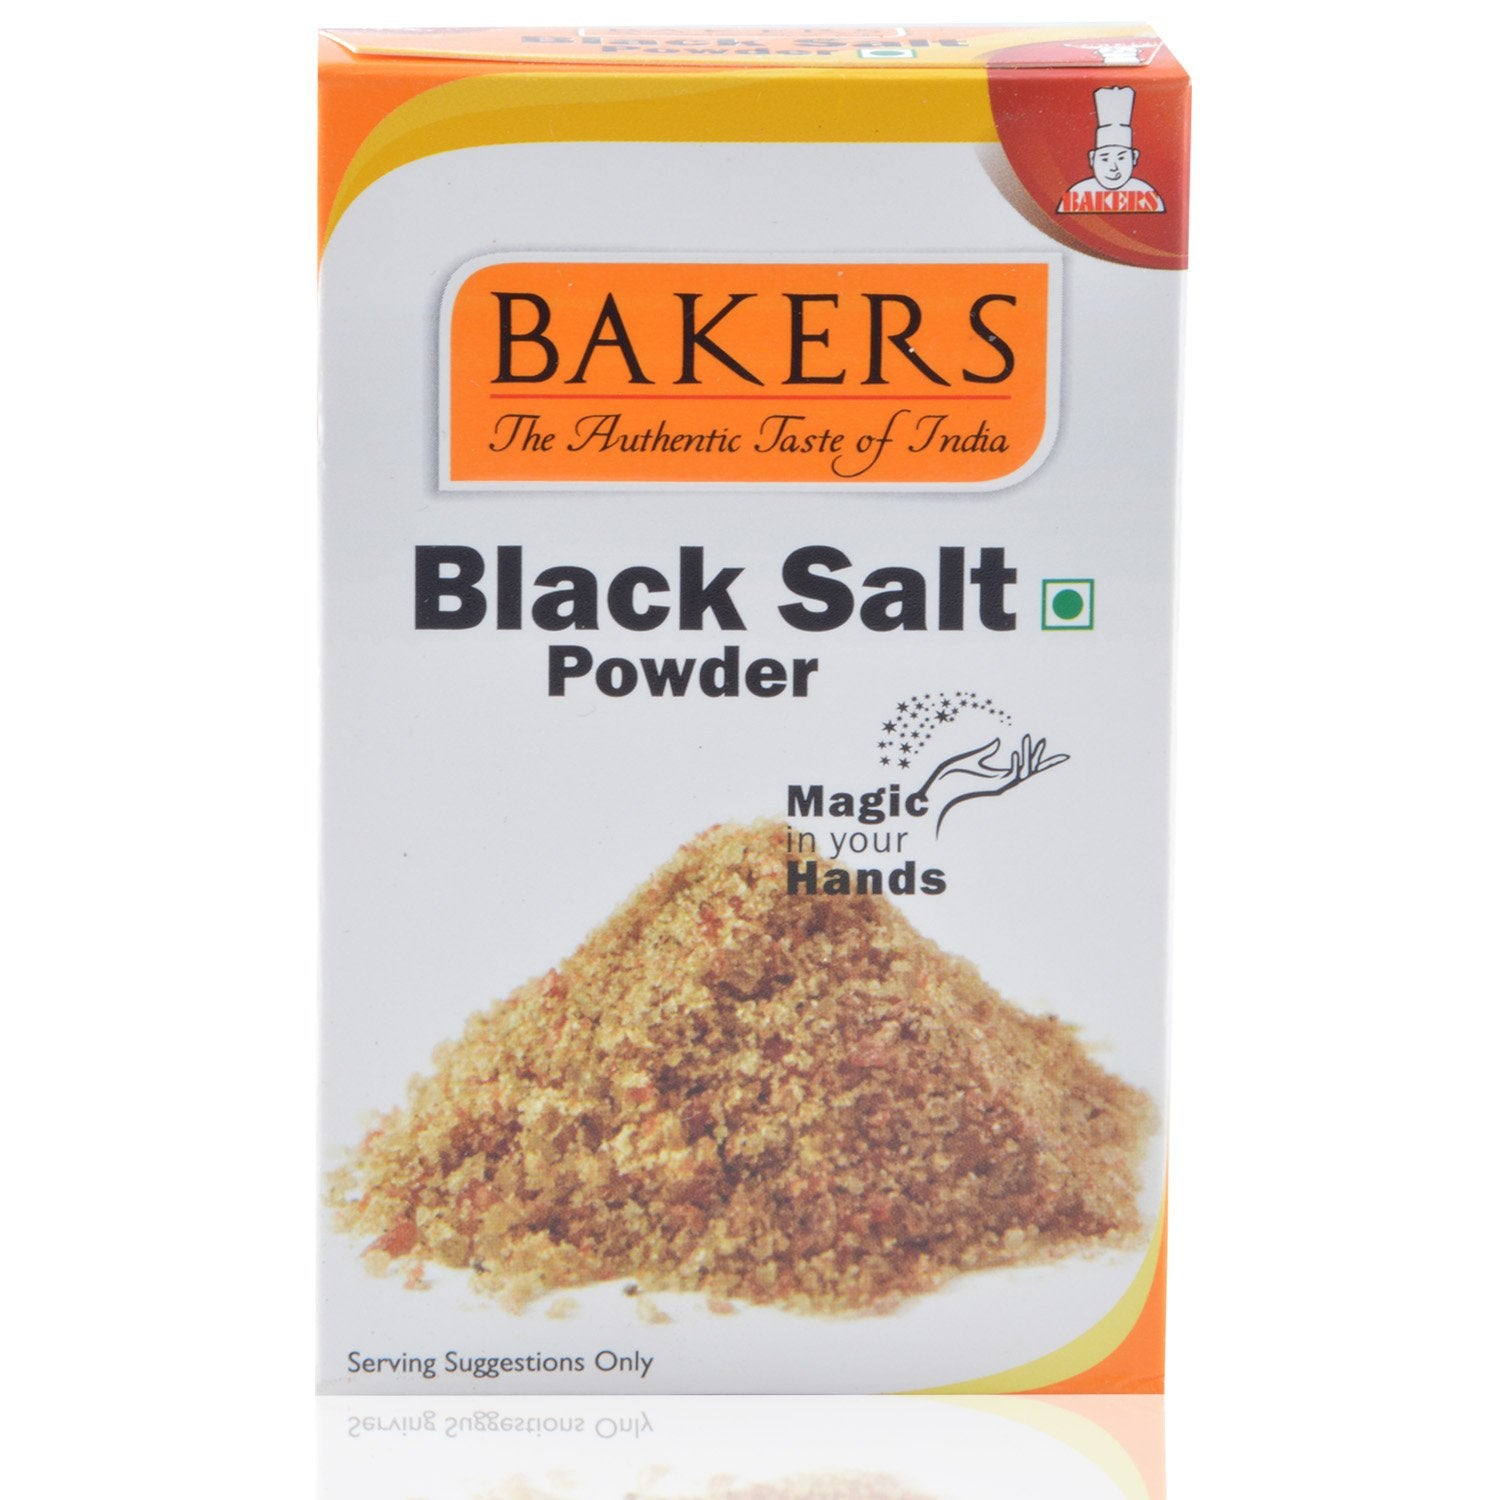 BAKERS BLACK SALT POWDER